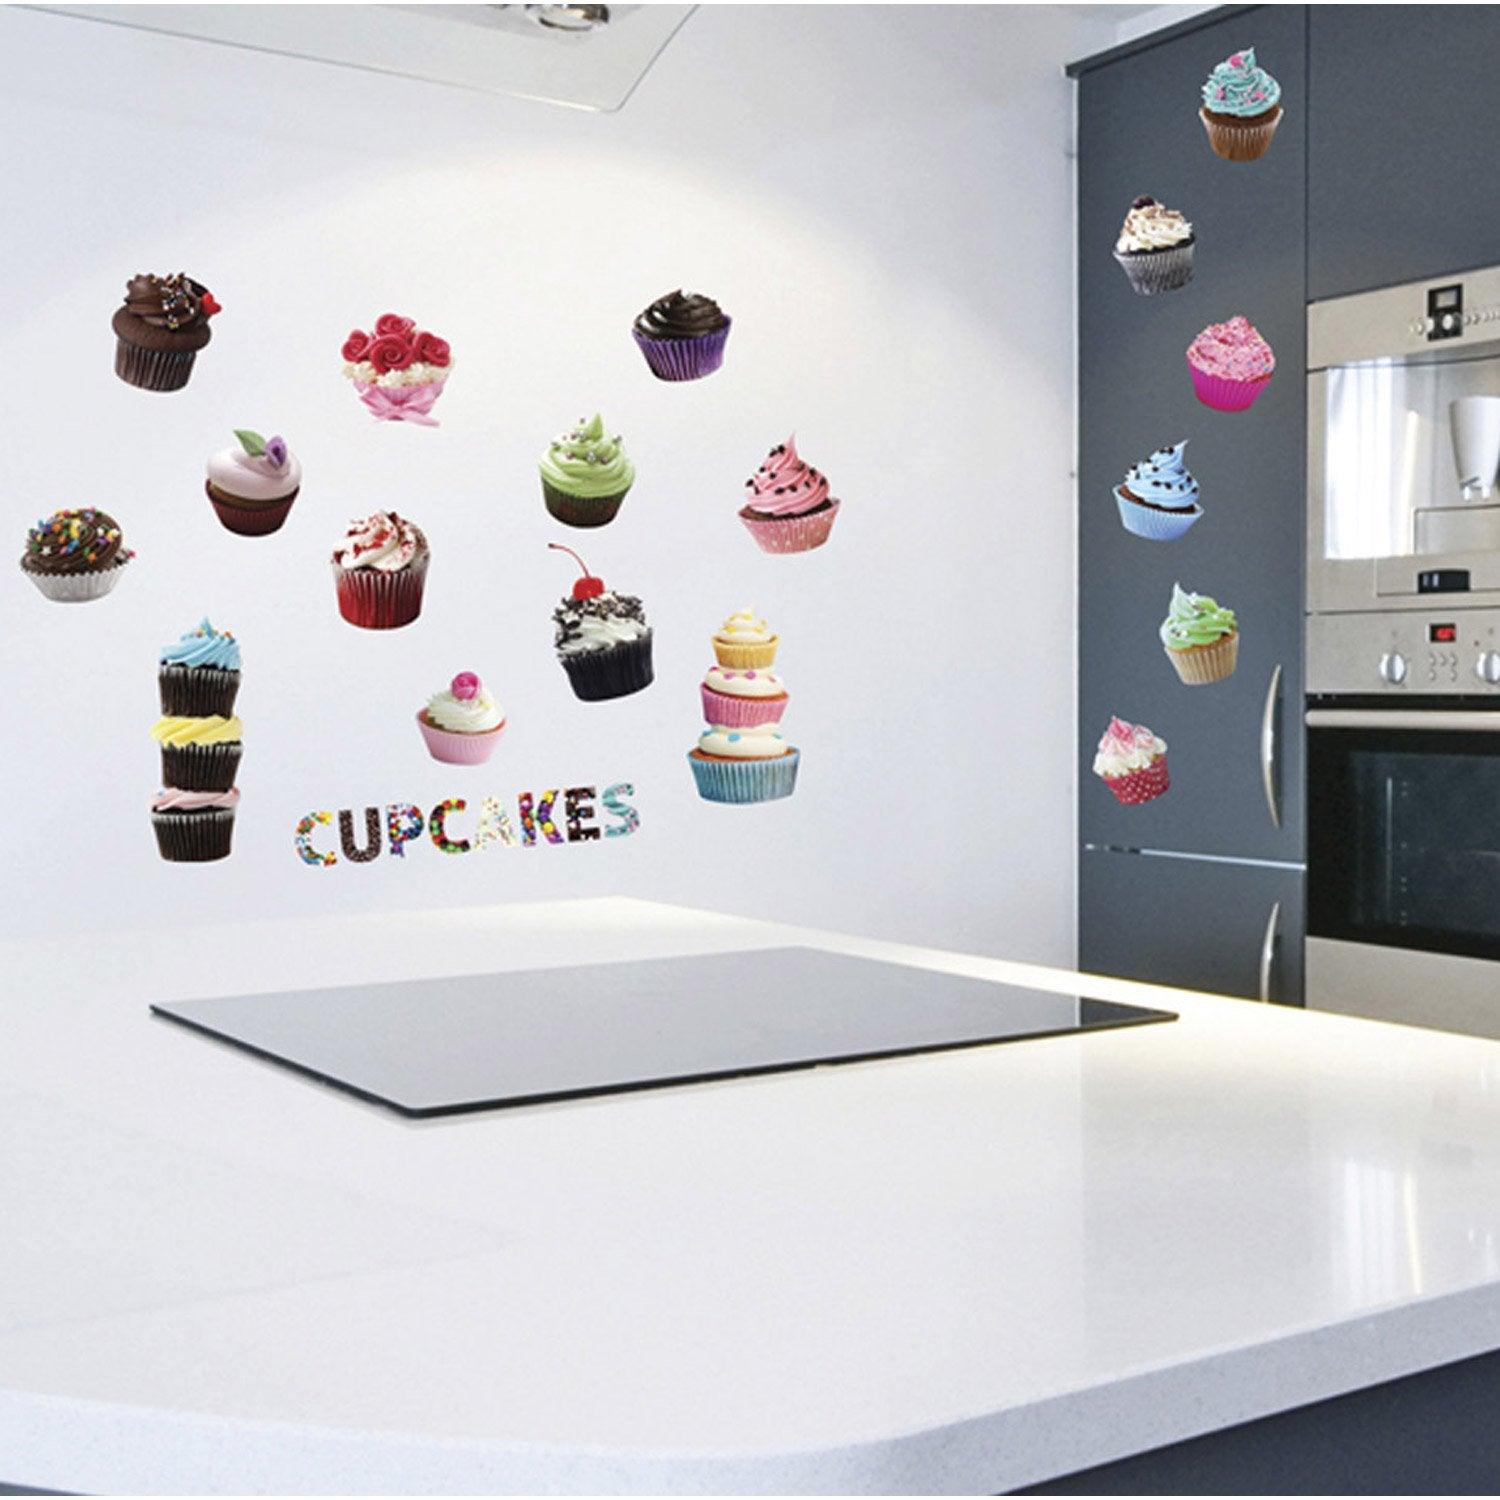 sticker cup cakes 50 cm x 70 cm leroy merlin. Black Bedroom Furniture Sets. Home Design Ideas